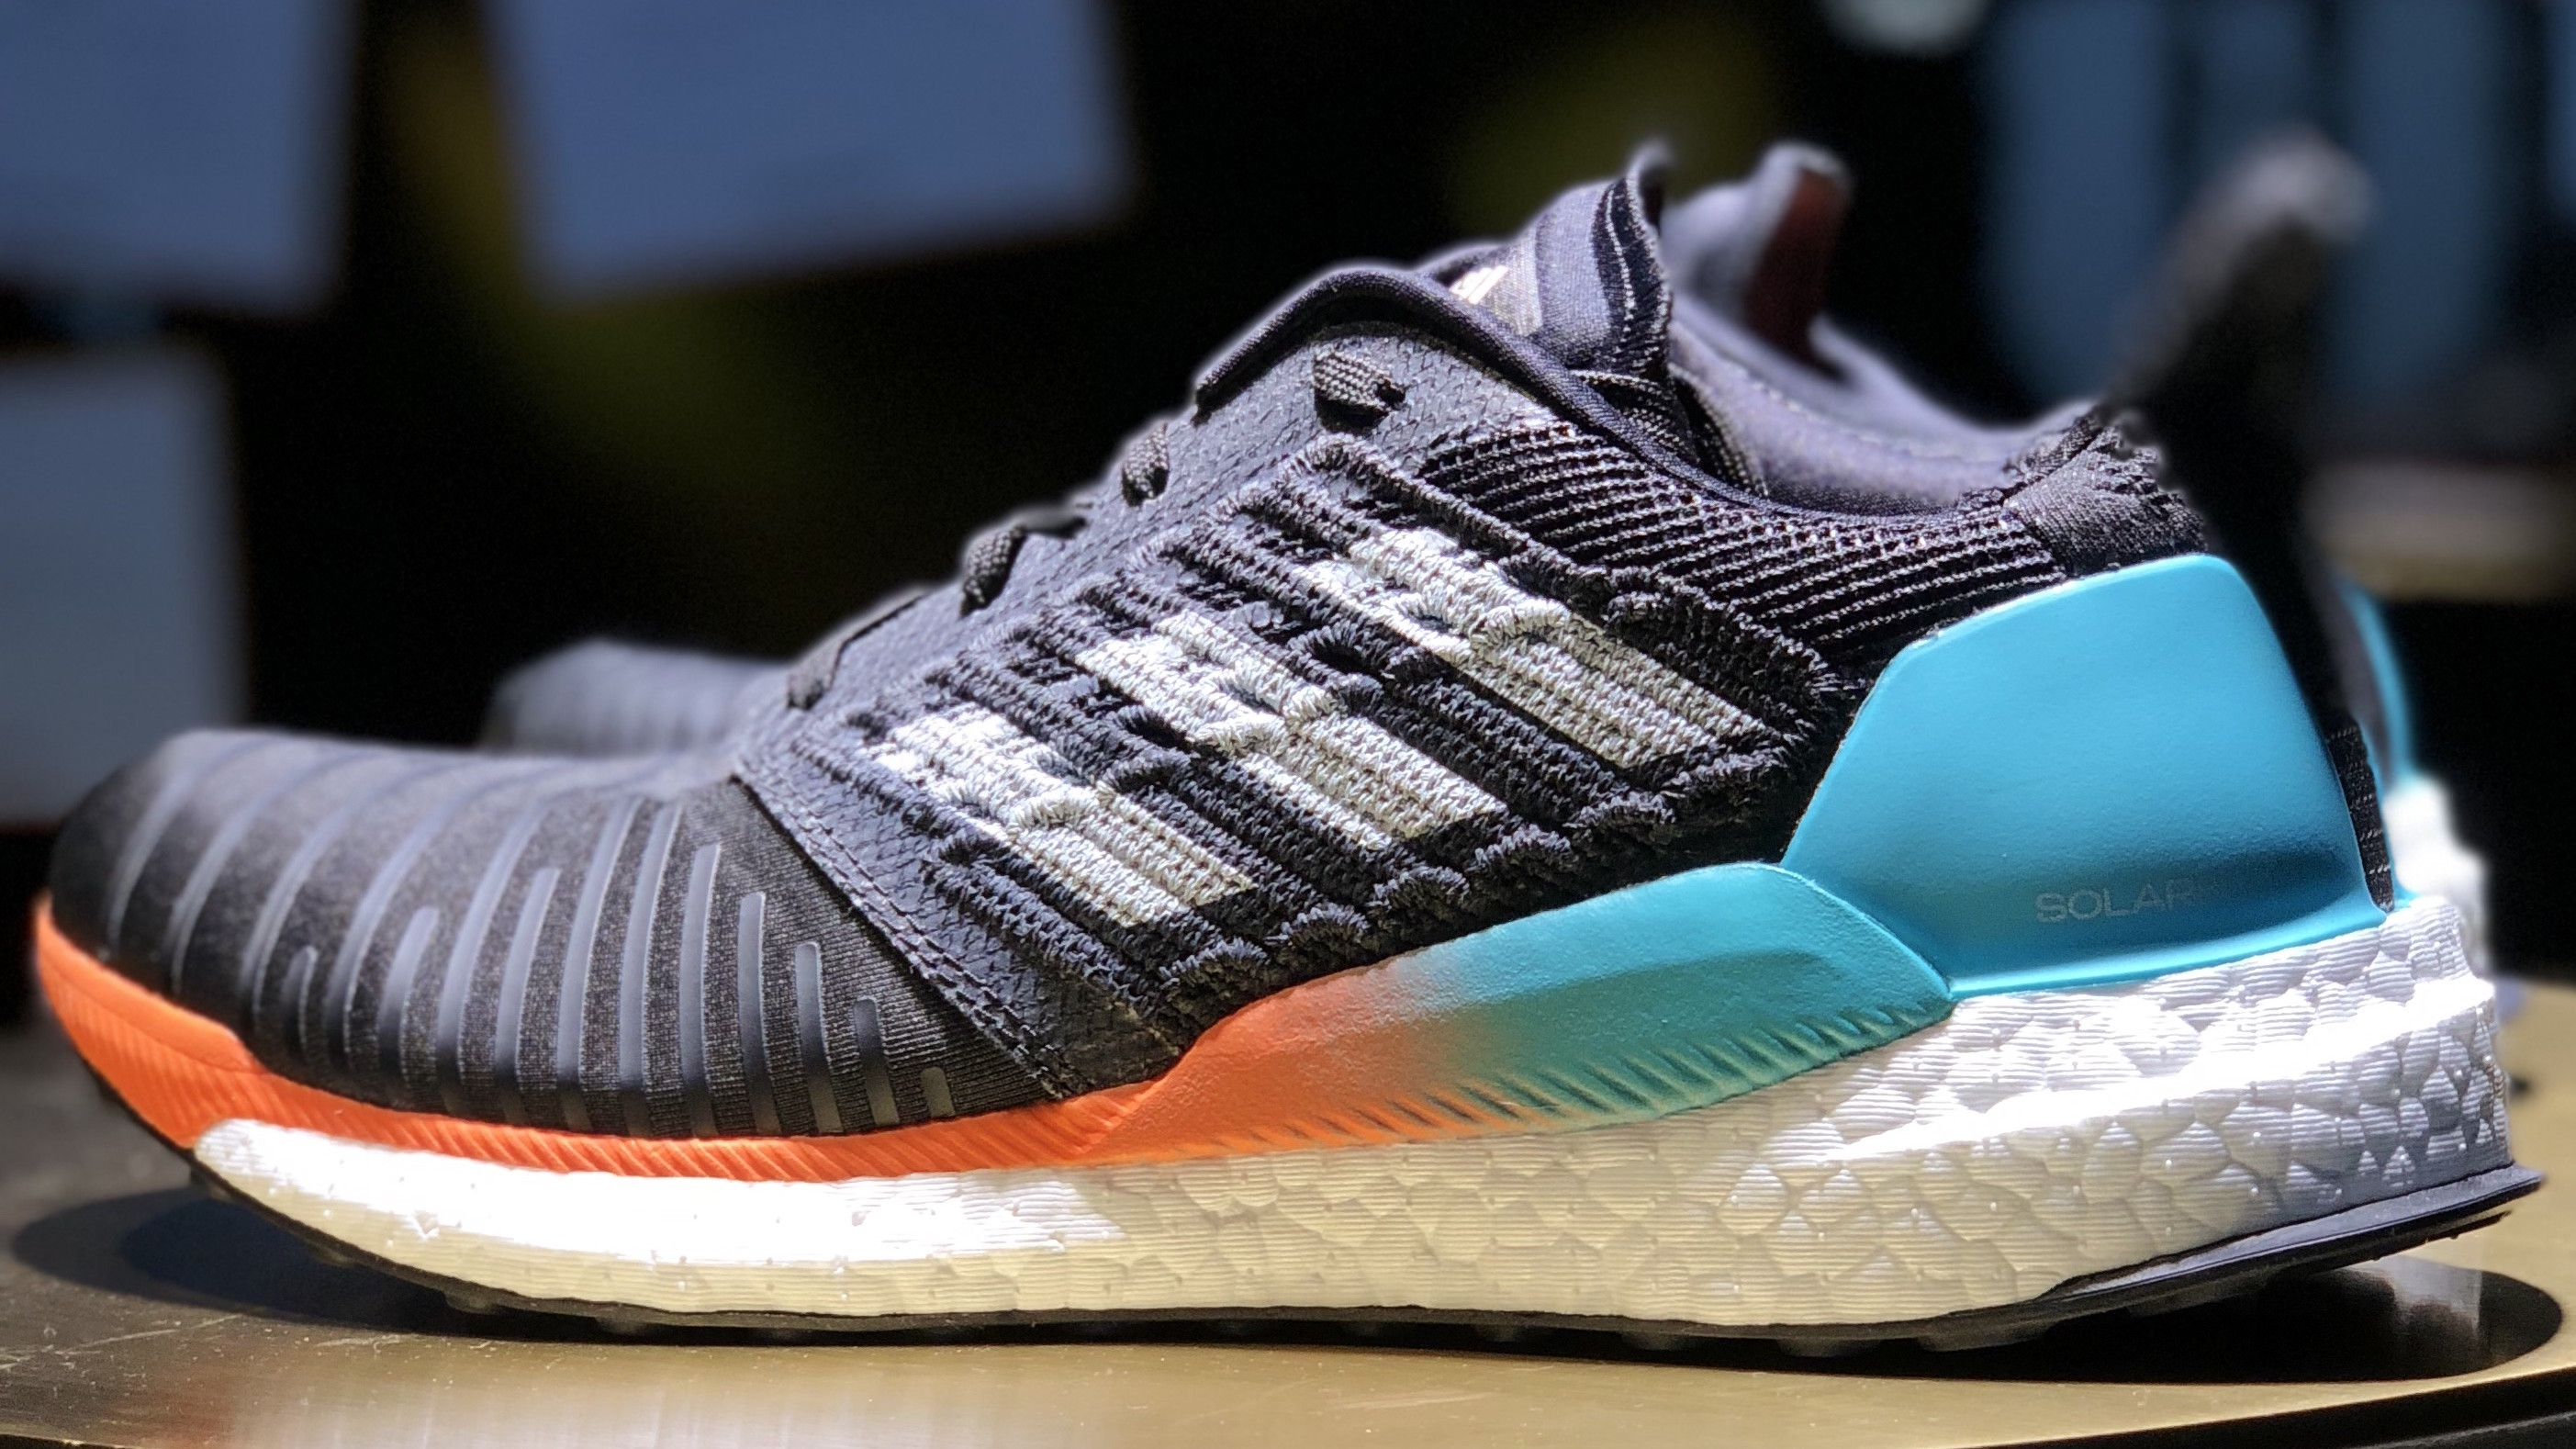 hot sale online 3be78 c8b65 Design Adidas Solarboost   Sole Collector